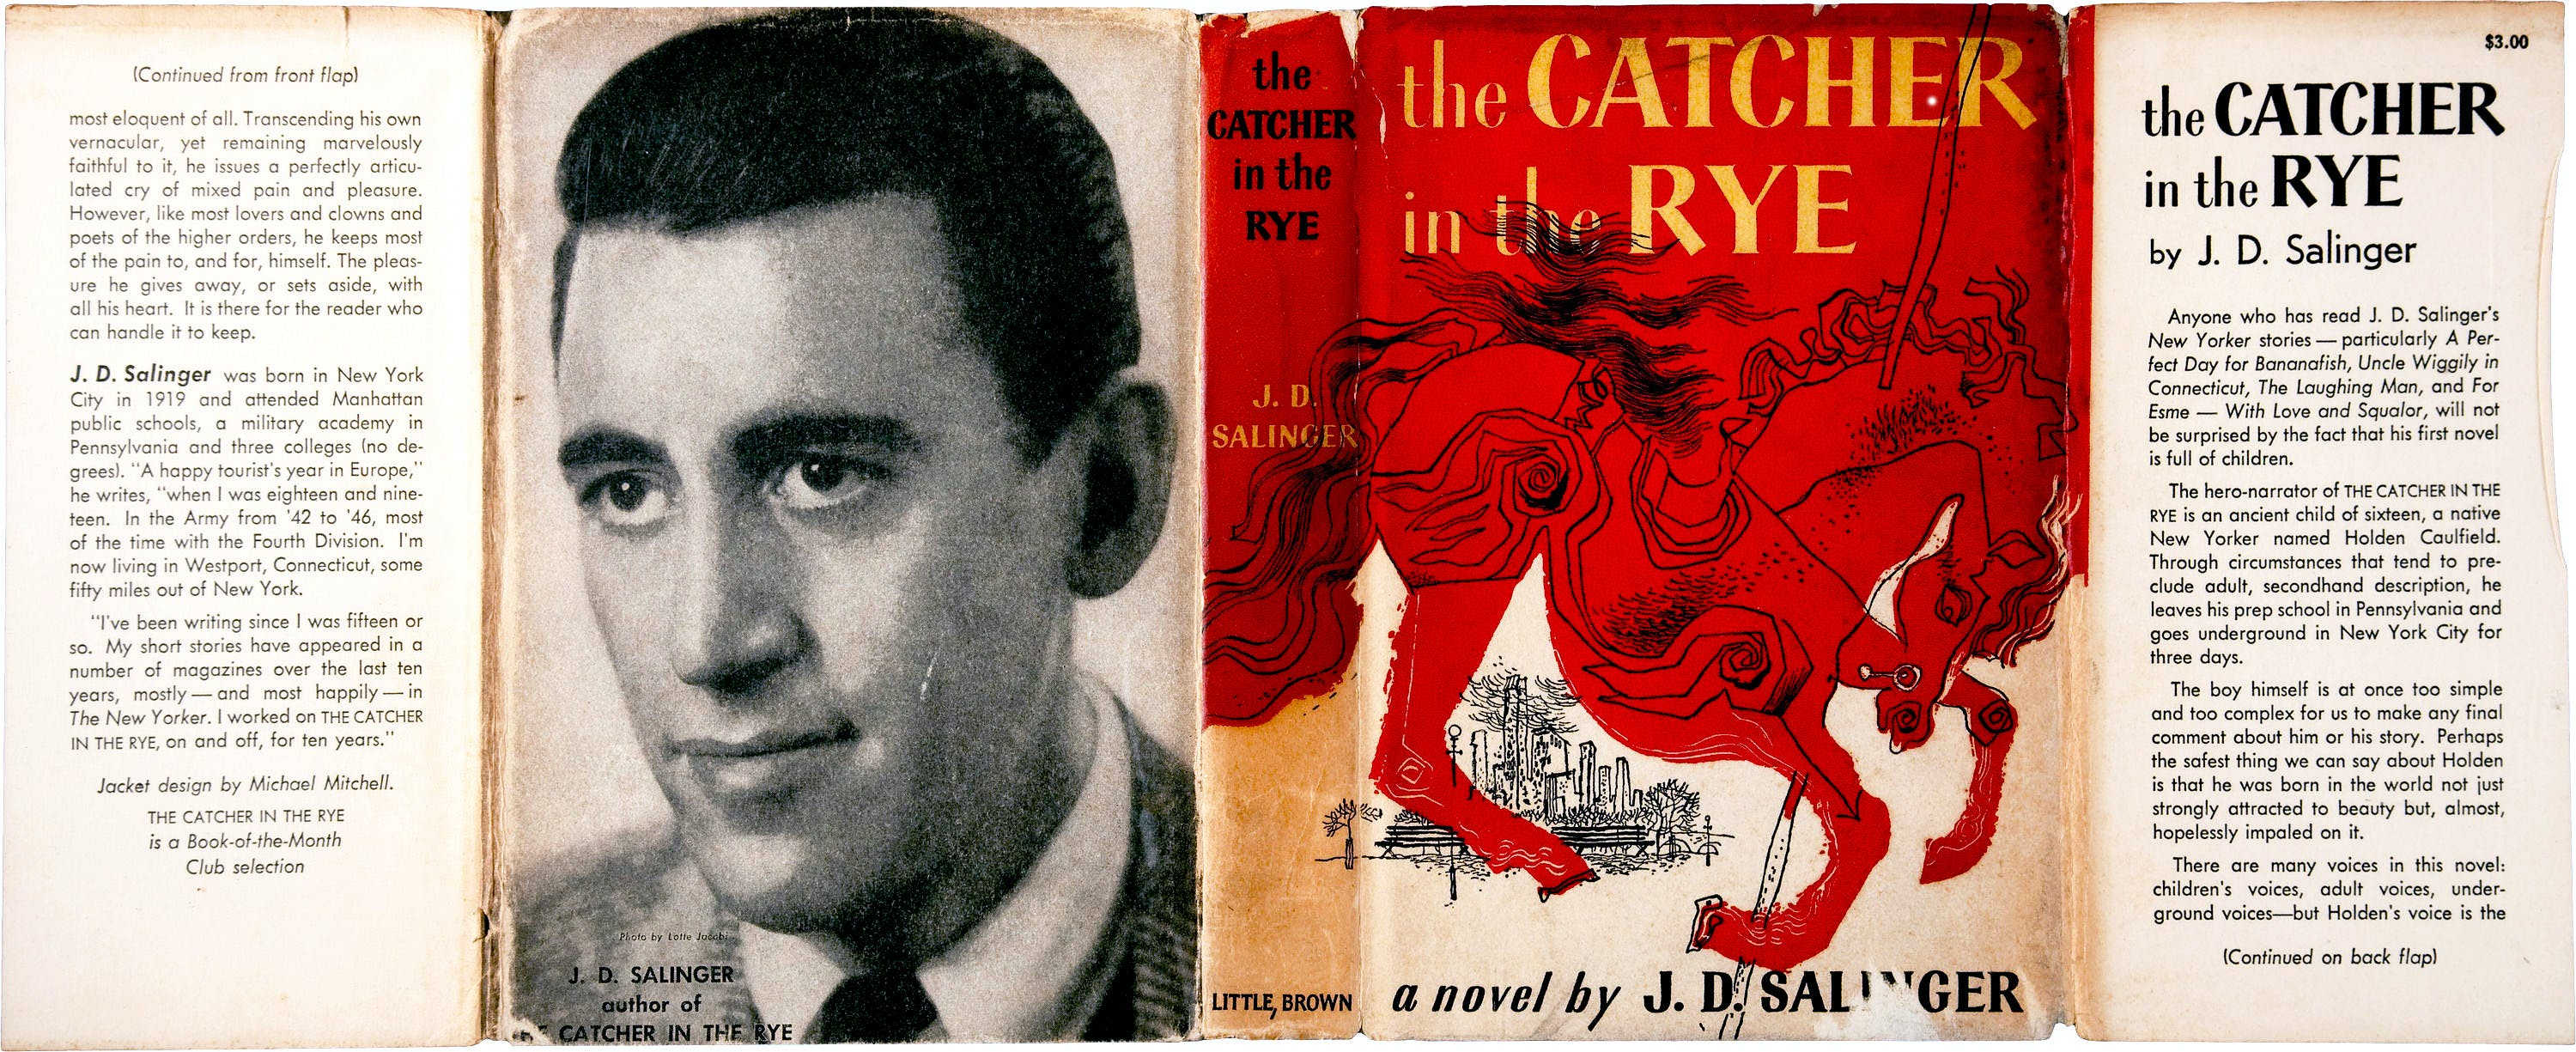 Looking Back after 70 Years: Salinger's Catcher in the Rye